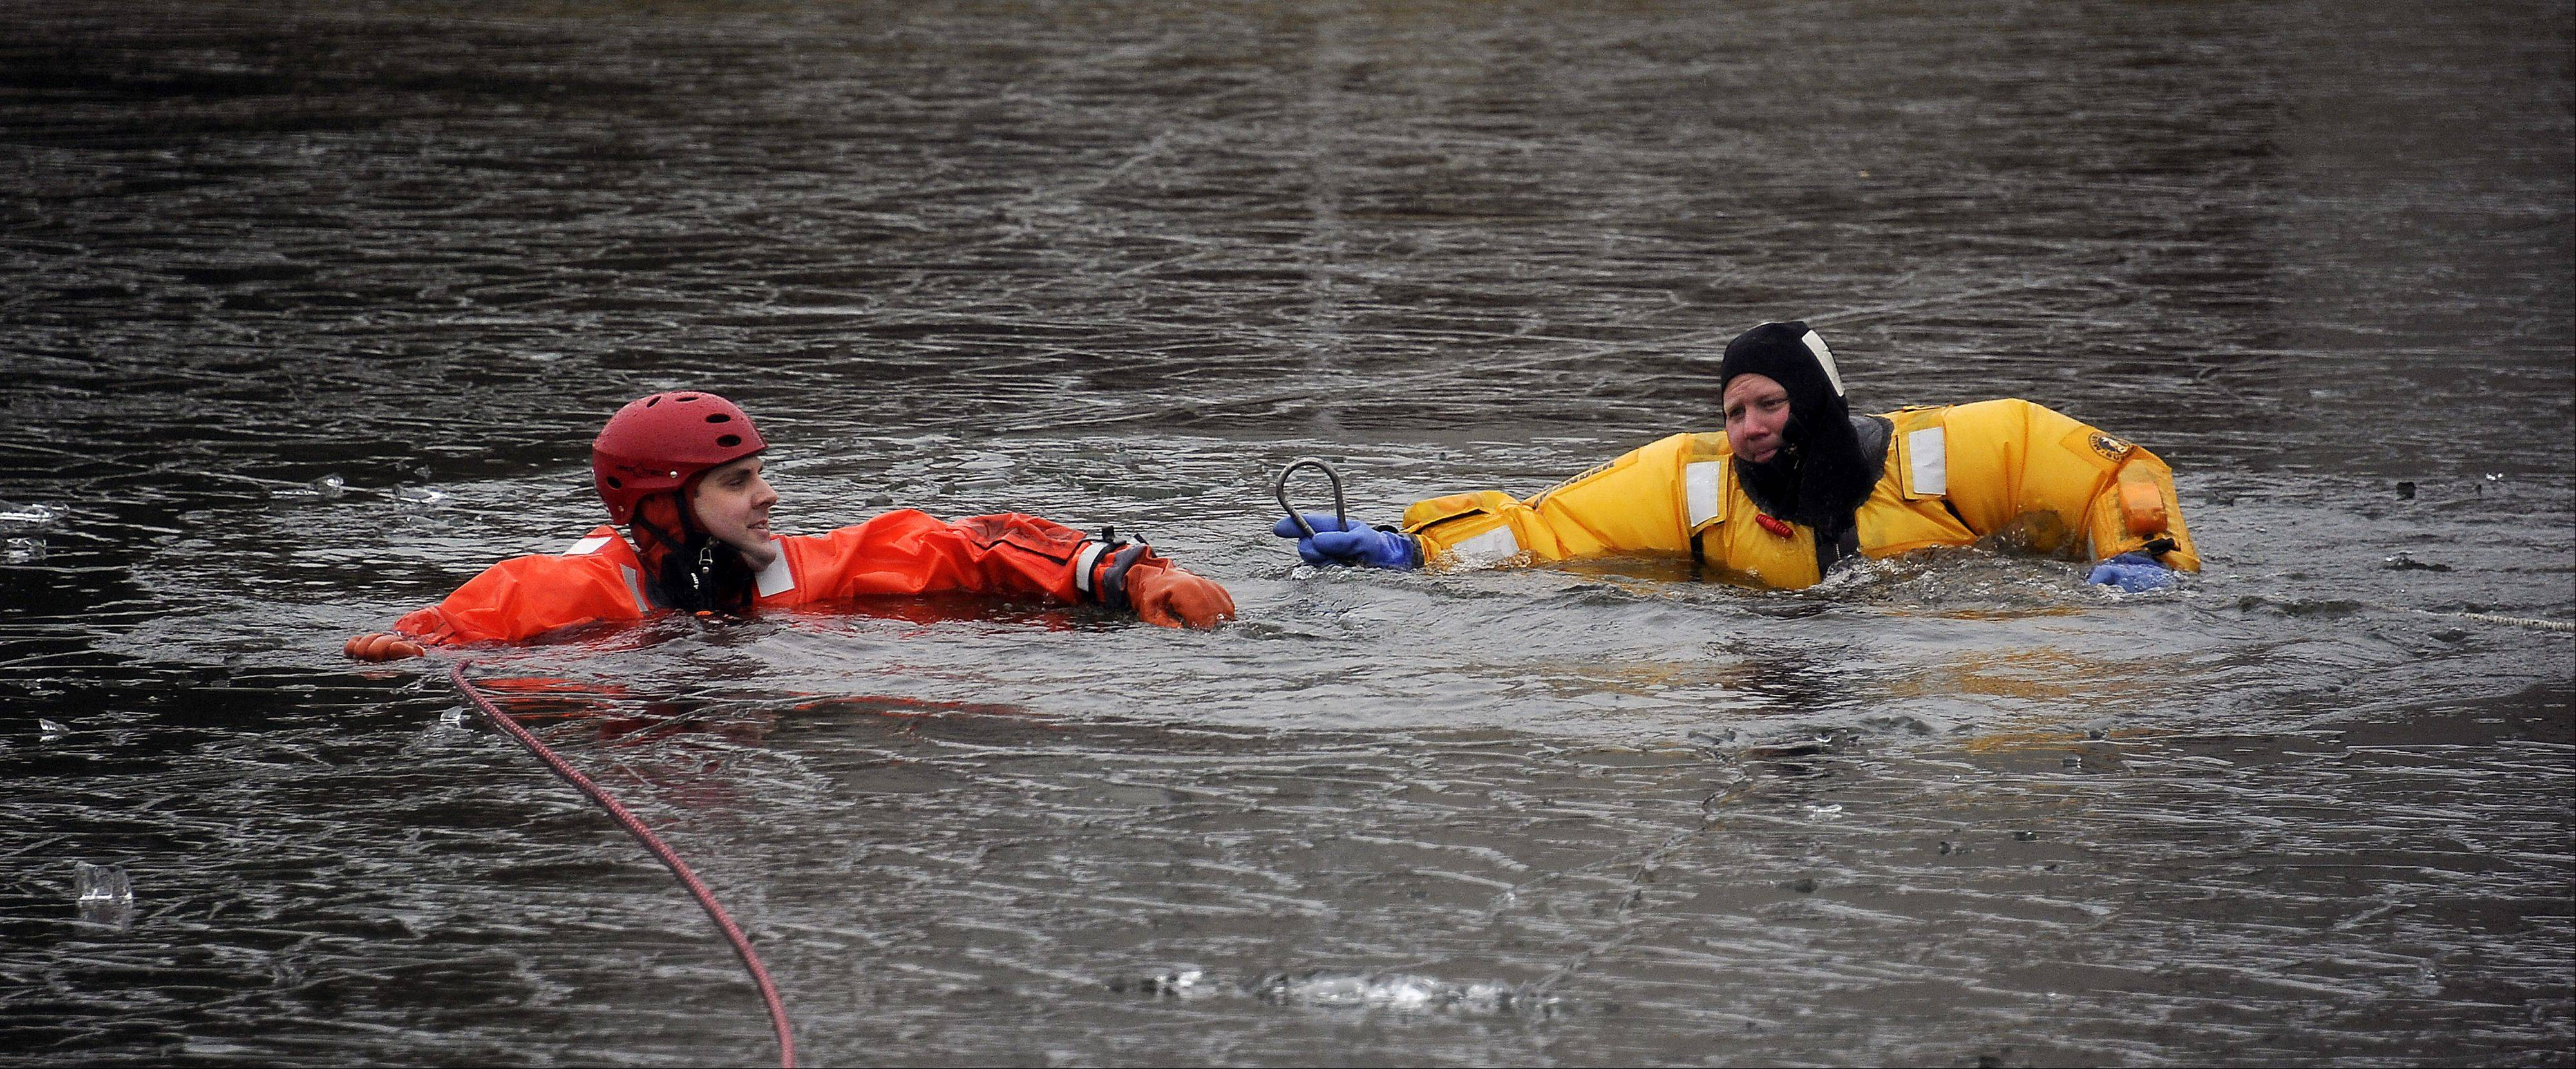 Firefighter/paramedic Jason Stockton from Lincolnshire dons a dry suit braving the 30 degree water to rescue victim Nick Otto from Buffalo Grove Fire Department during their ice rescue drills. The training took place at the retention pond located next to the Combined Area Fire Training Facility in Buffalo Grove on Wednesday.